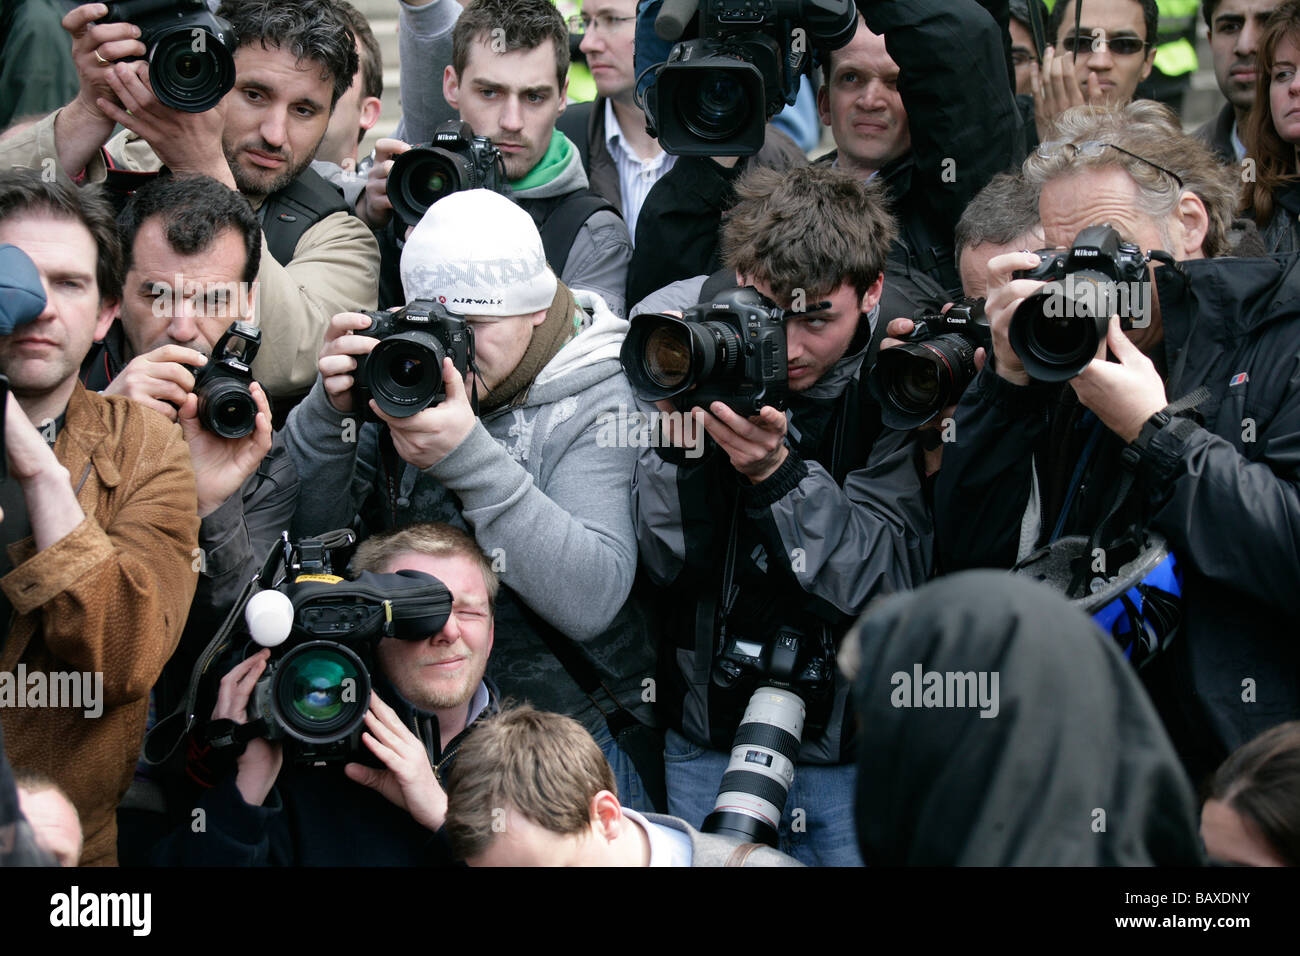 A hoard of news photographers and cameramen cover a news story - Stock Image